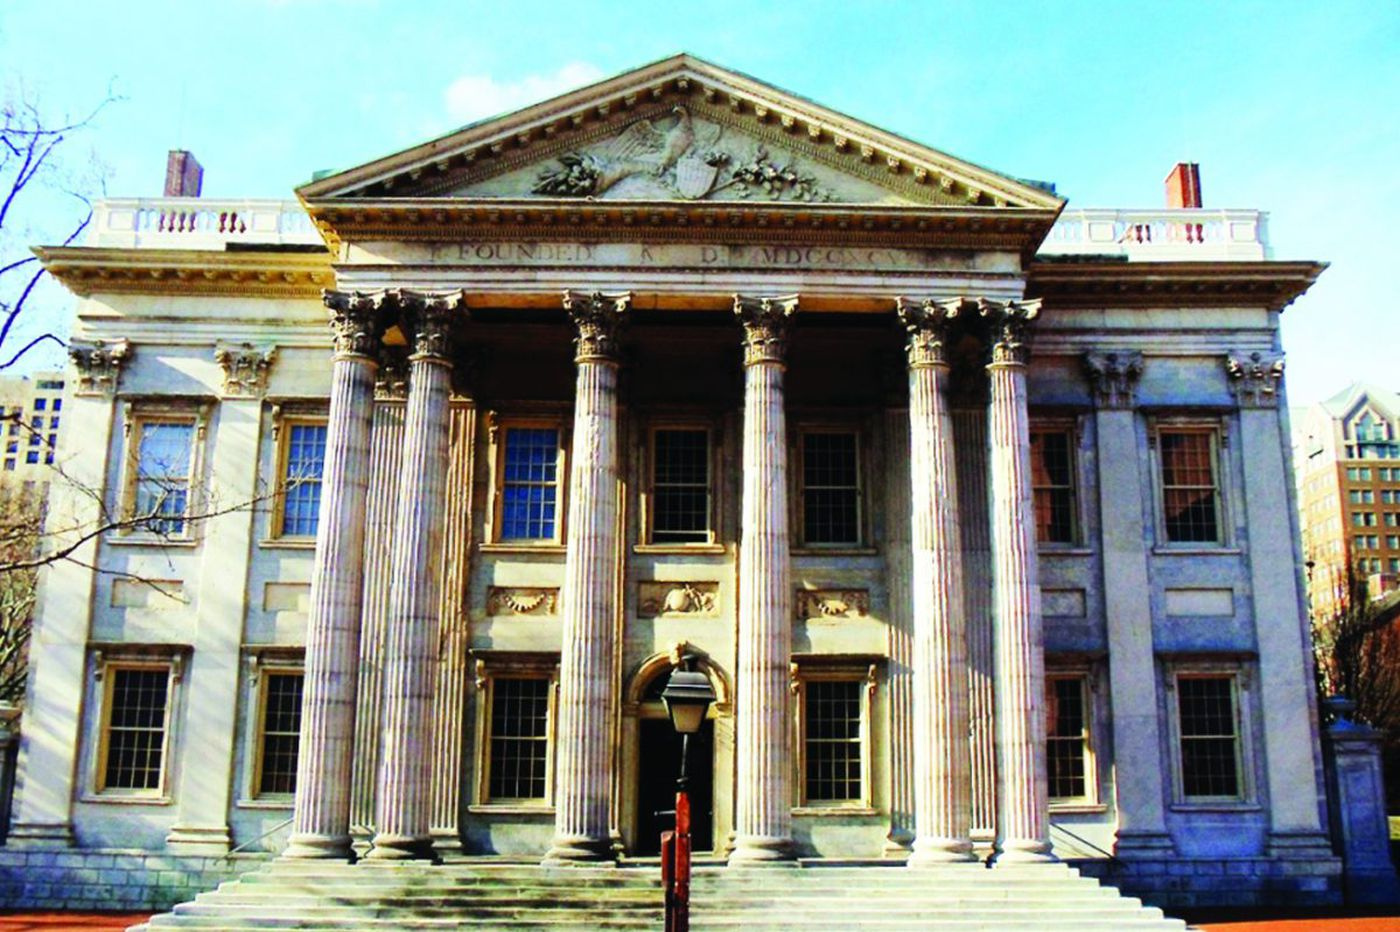 Hamilton fans seek $26M to restore Philly's First Bank, Fed forerunner